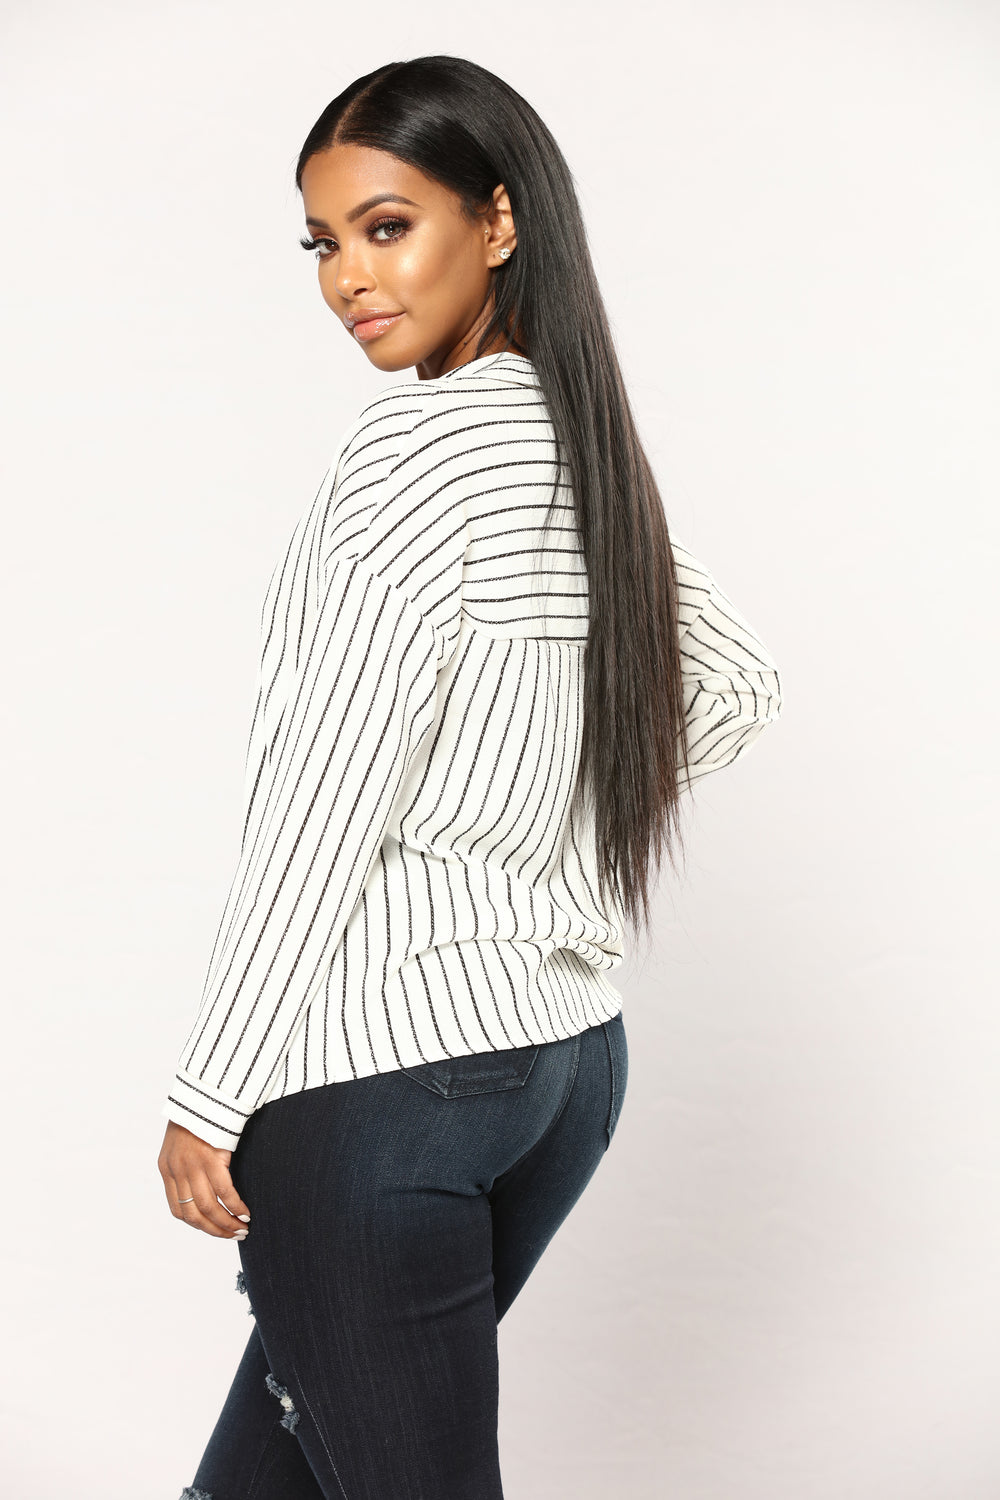 Take Me Serious Striped Top - Black/White